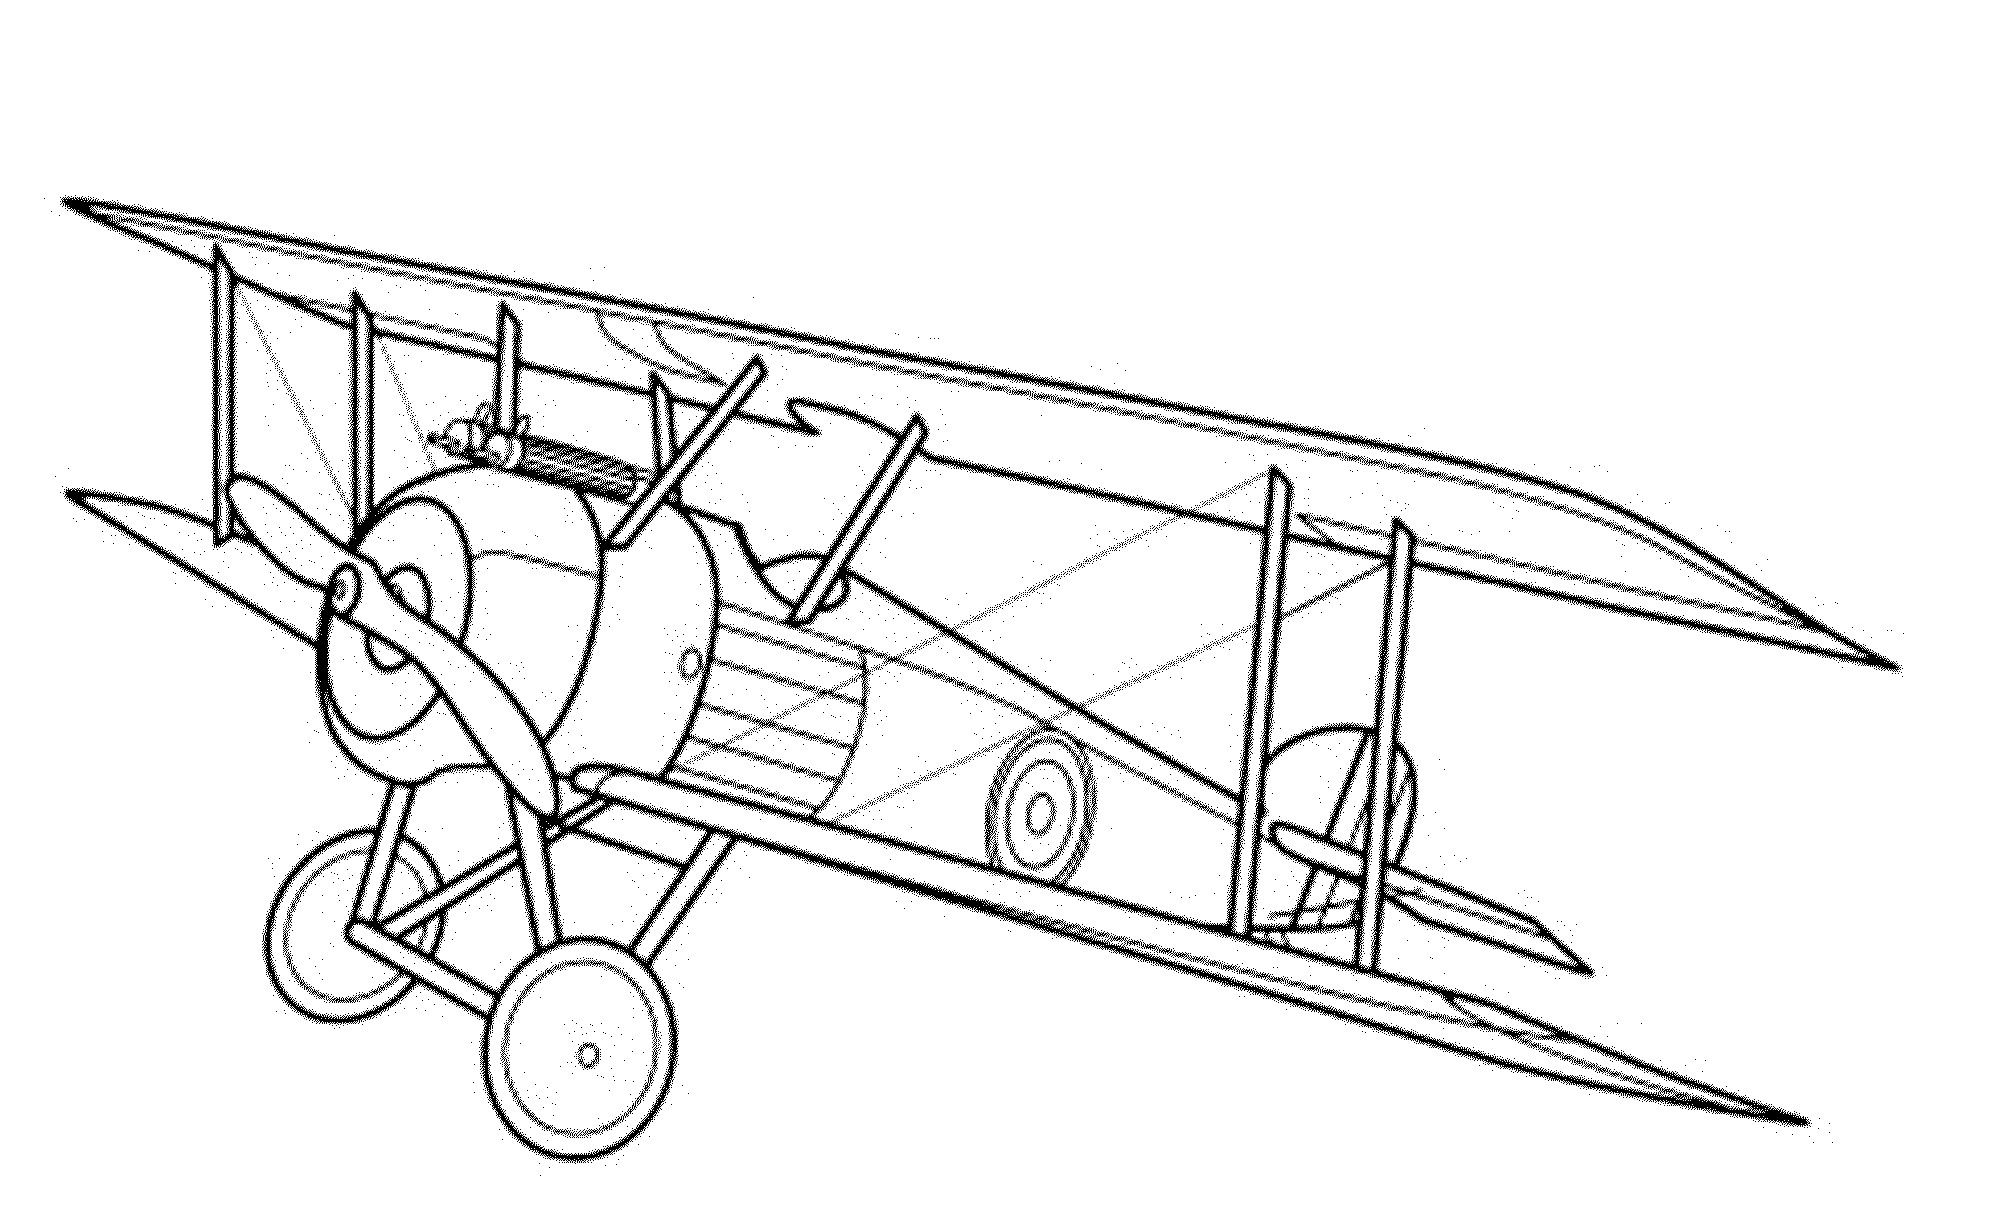 2000x1232 Coloring Pages Old Airplanes